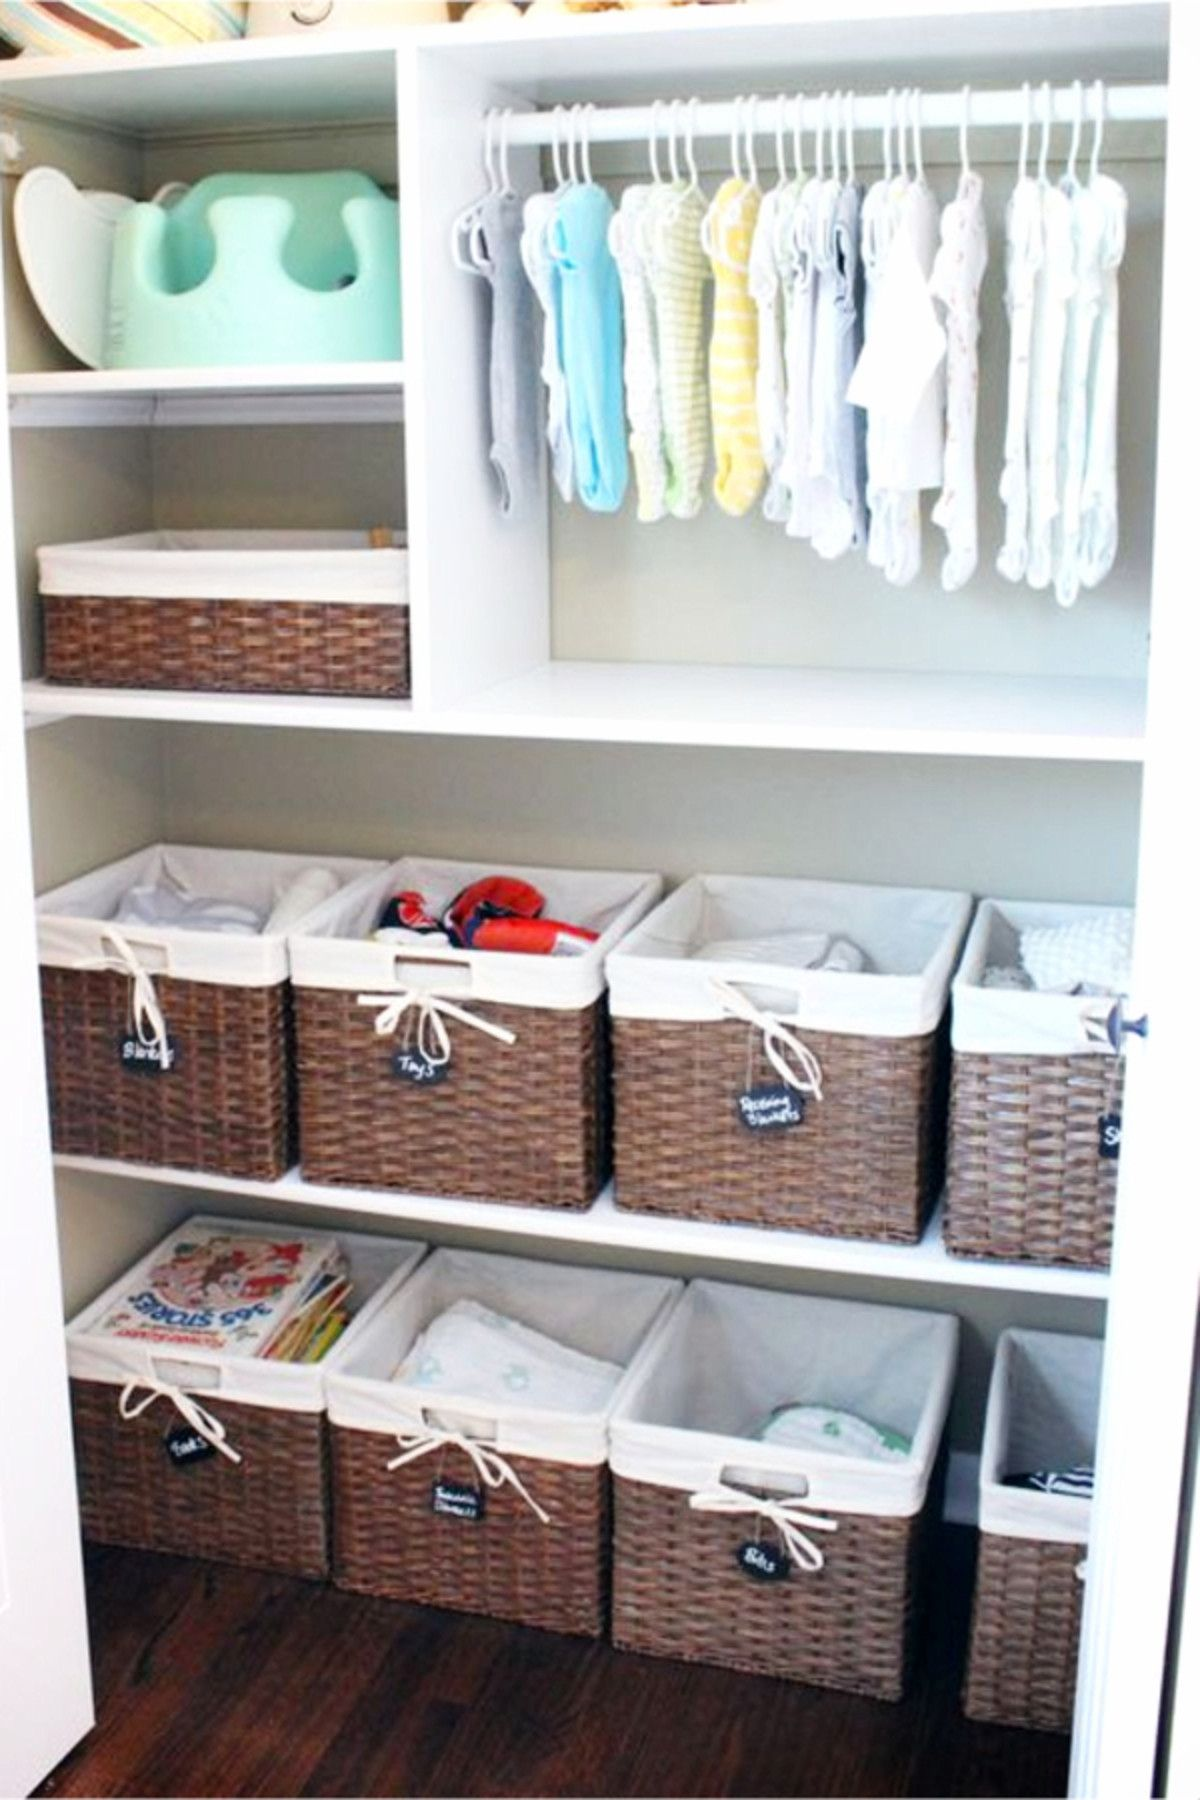 Baby Closet Ideas: 27 Nursery Closet Organization, Storage and